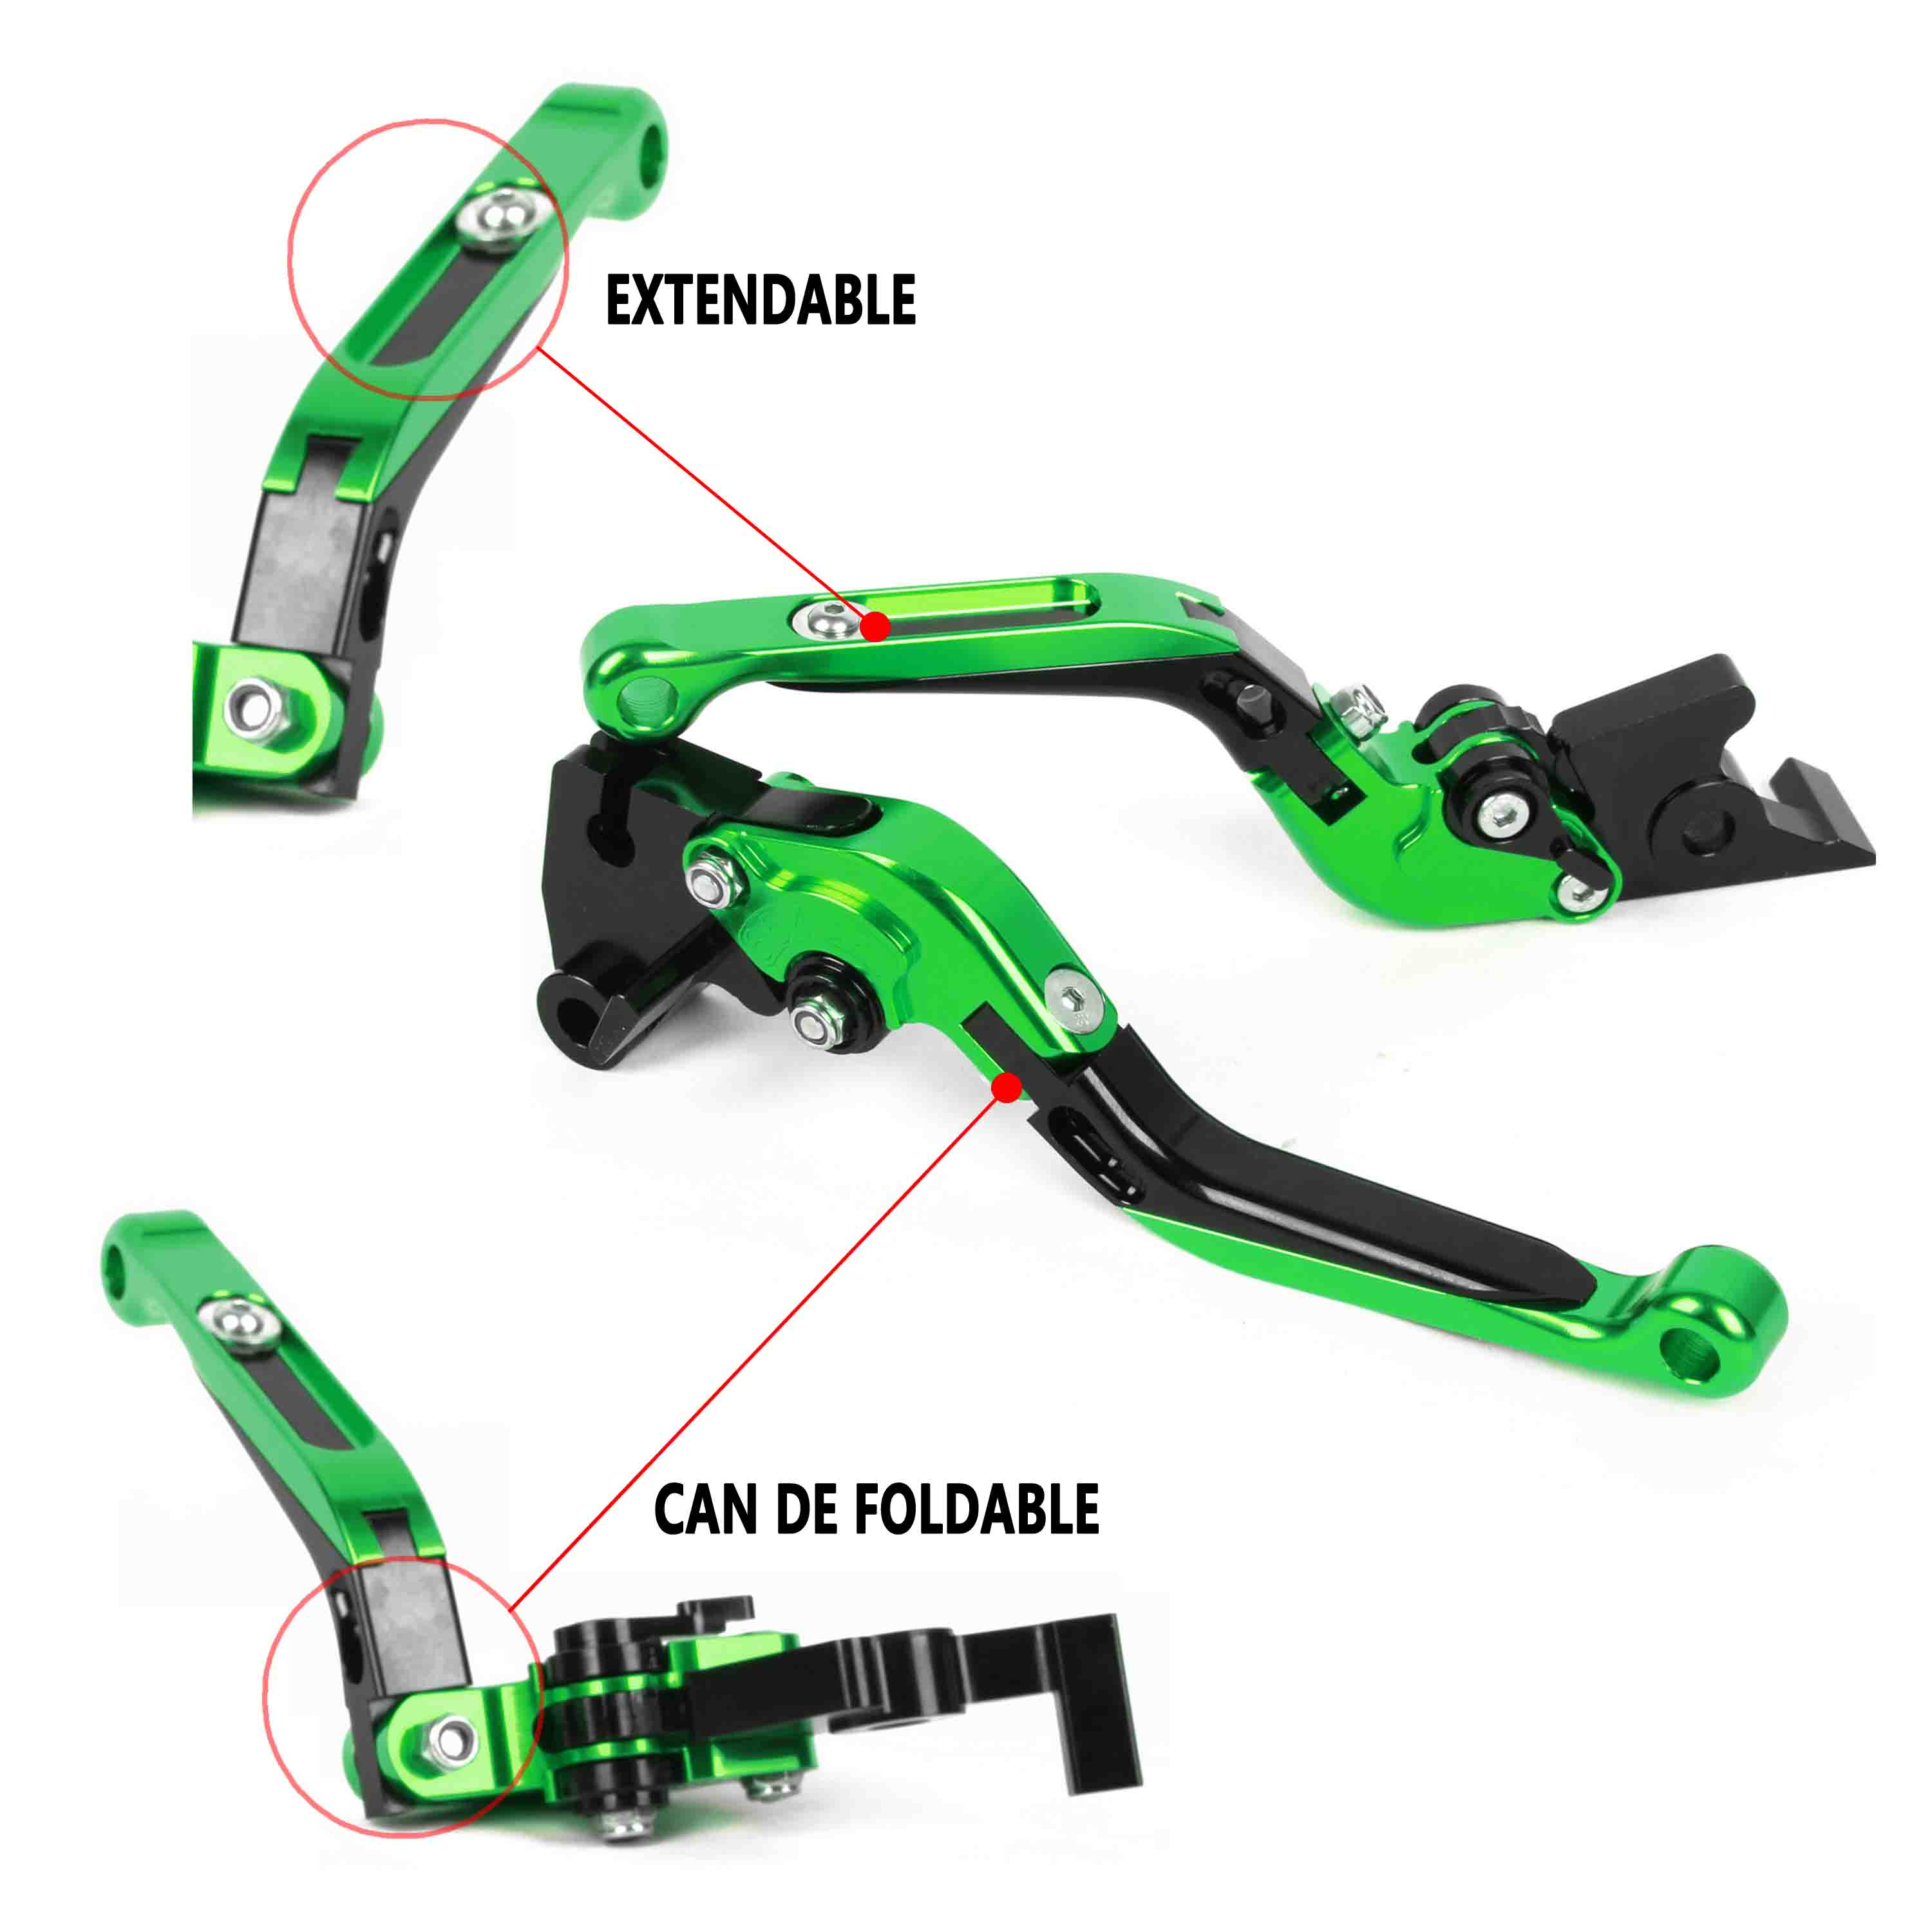 ФОТО For Kawasaki ER-6N/F 2009-2014 Foldable Extendable Brake Clutch Levers Aluminum Alloy CNC High-quality Folding&Extending 2013